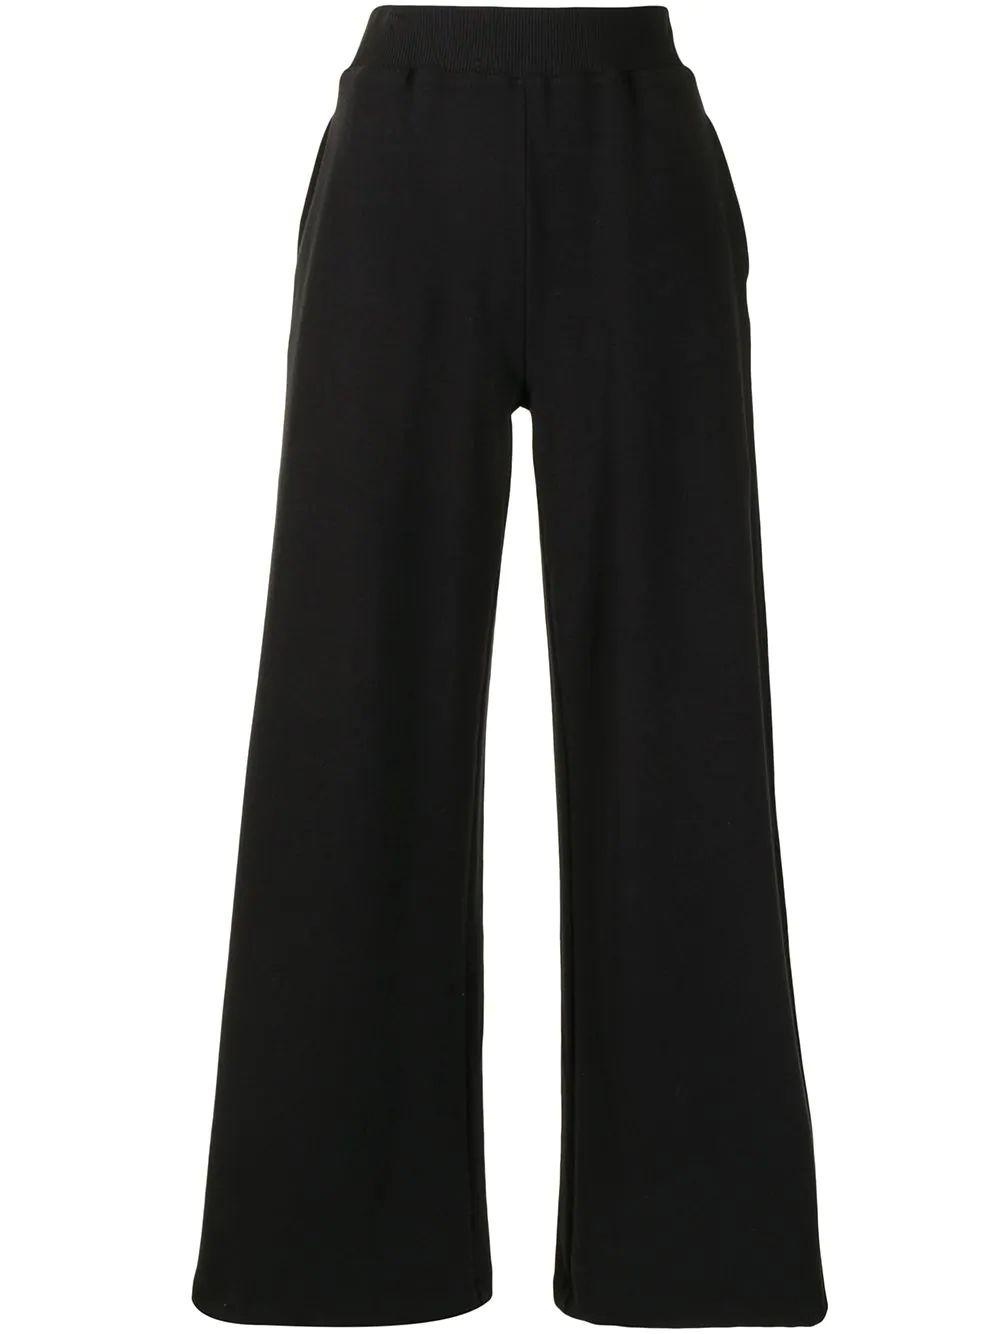 The Campbell Wide Leg Pants Item # 2682FTN